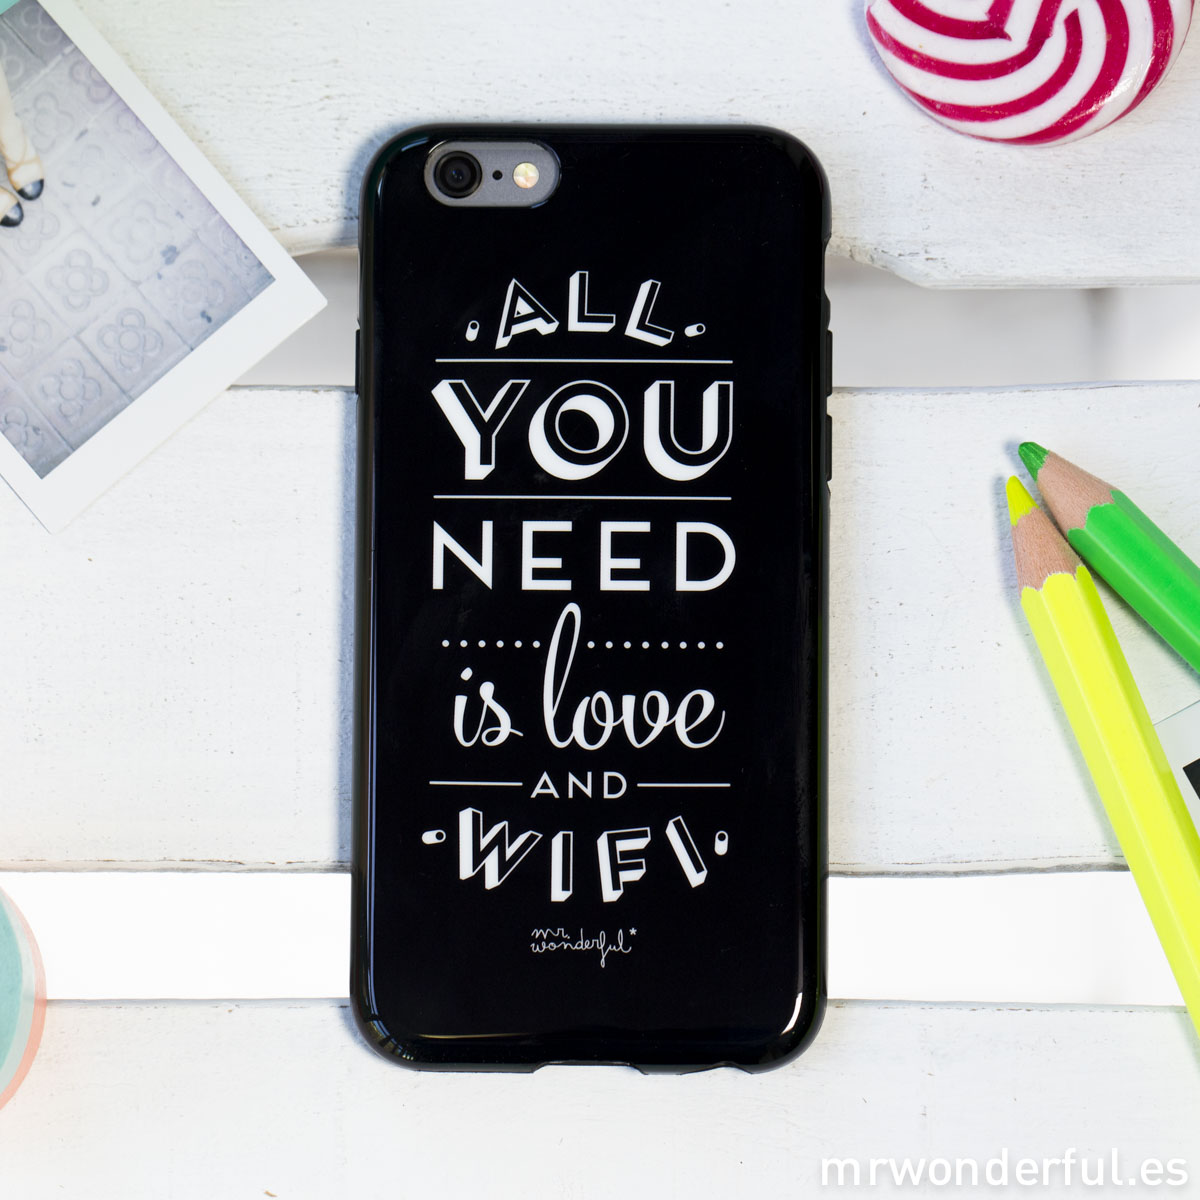 Mr.Wonderful funda iphone 6 plus - All you need is love and wifi